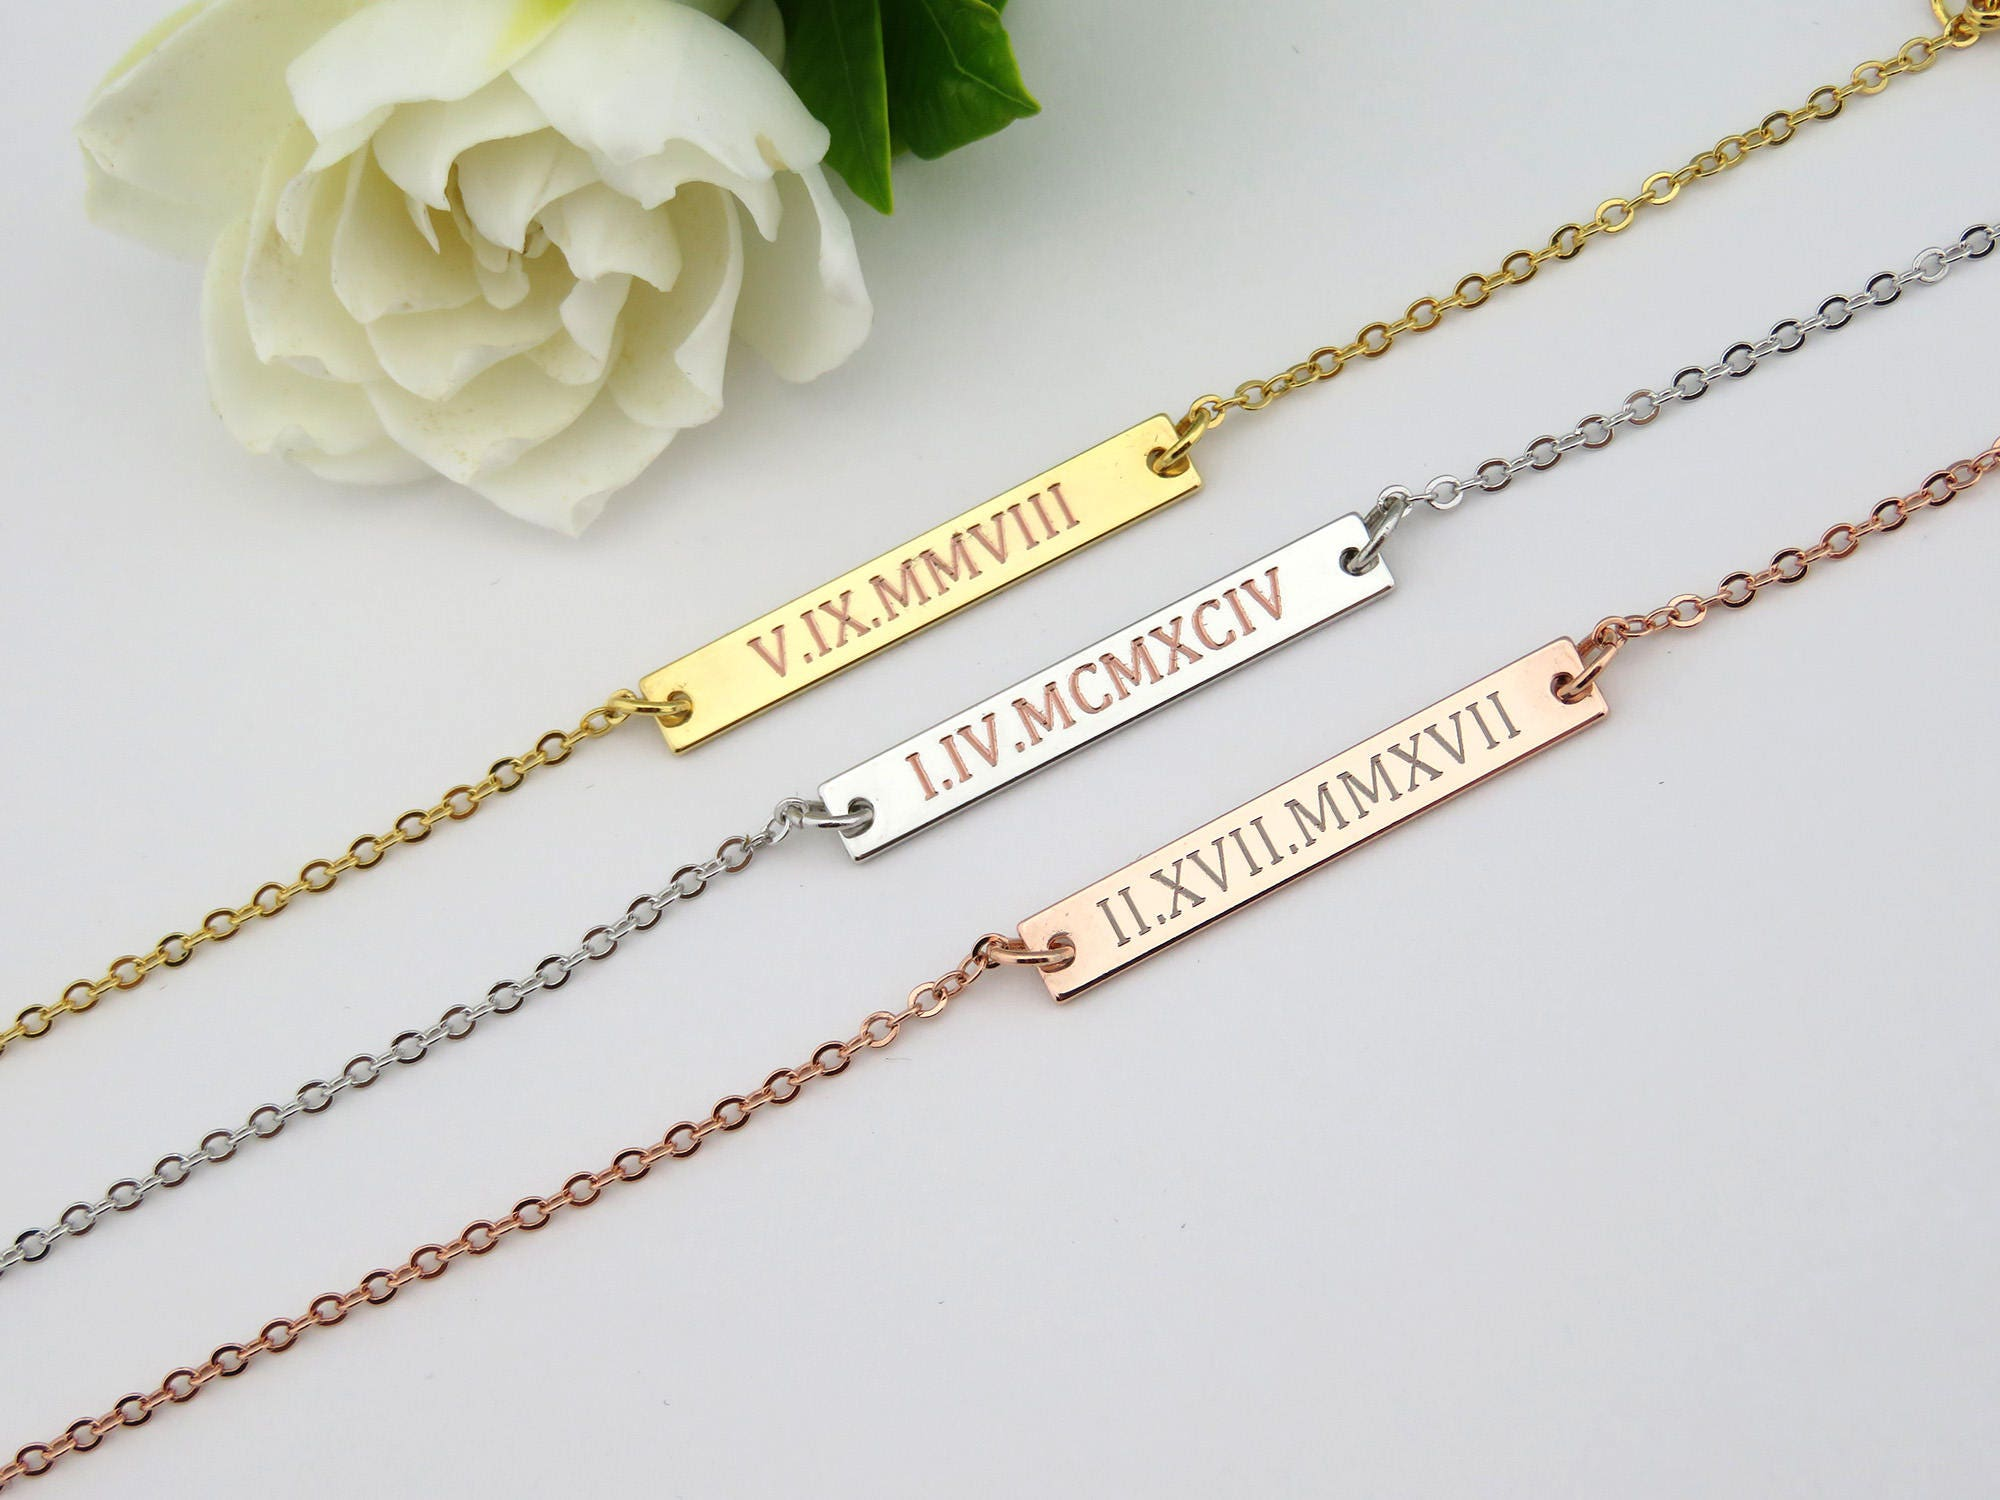 anniversary numeral jewelry from necklaces color wedding gold bar necklace item gift date in personalized roman for id men monogram chain women name